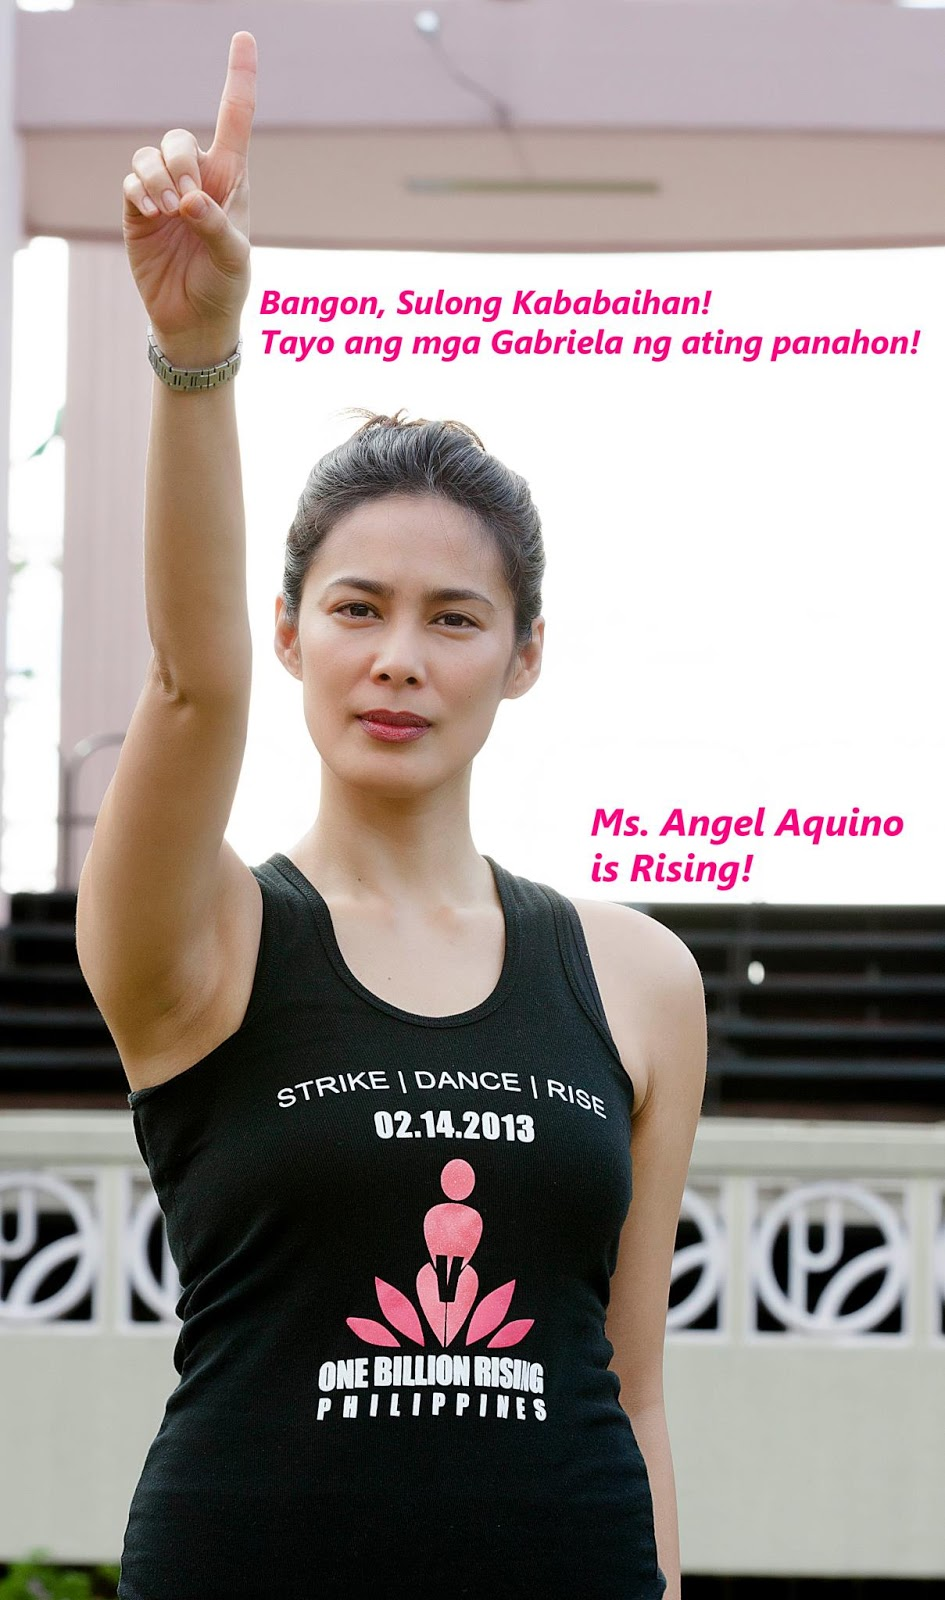 The Philippines Joins Eve Ensler's ONE BILLION RISING on Thursday, 2/14